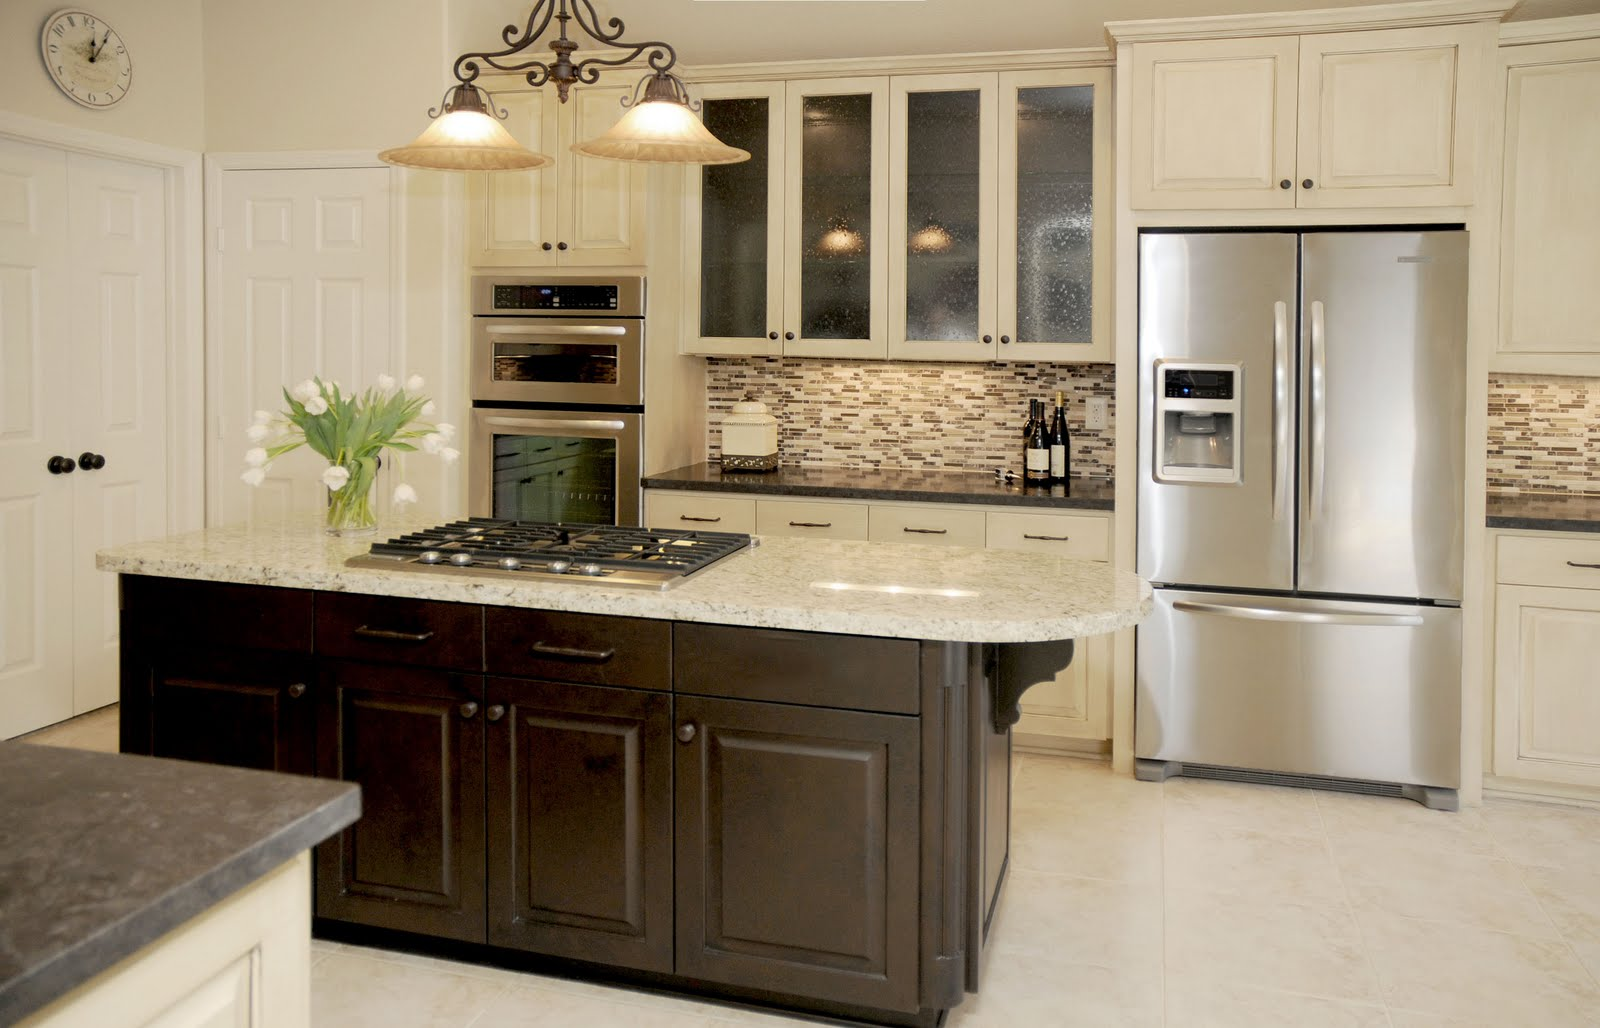 Design in the woods kitchen remodel before and after for Kitchen and remodeling